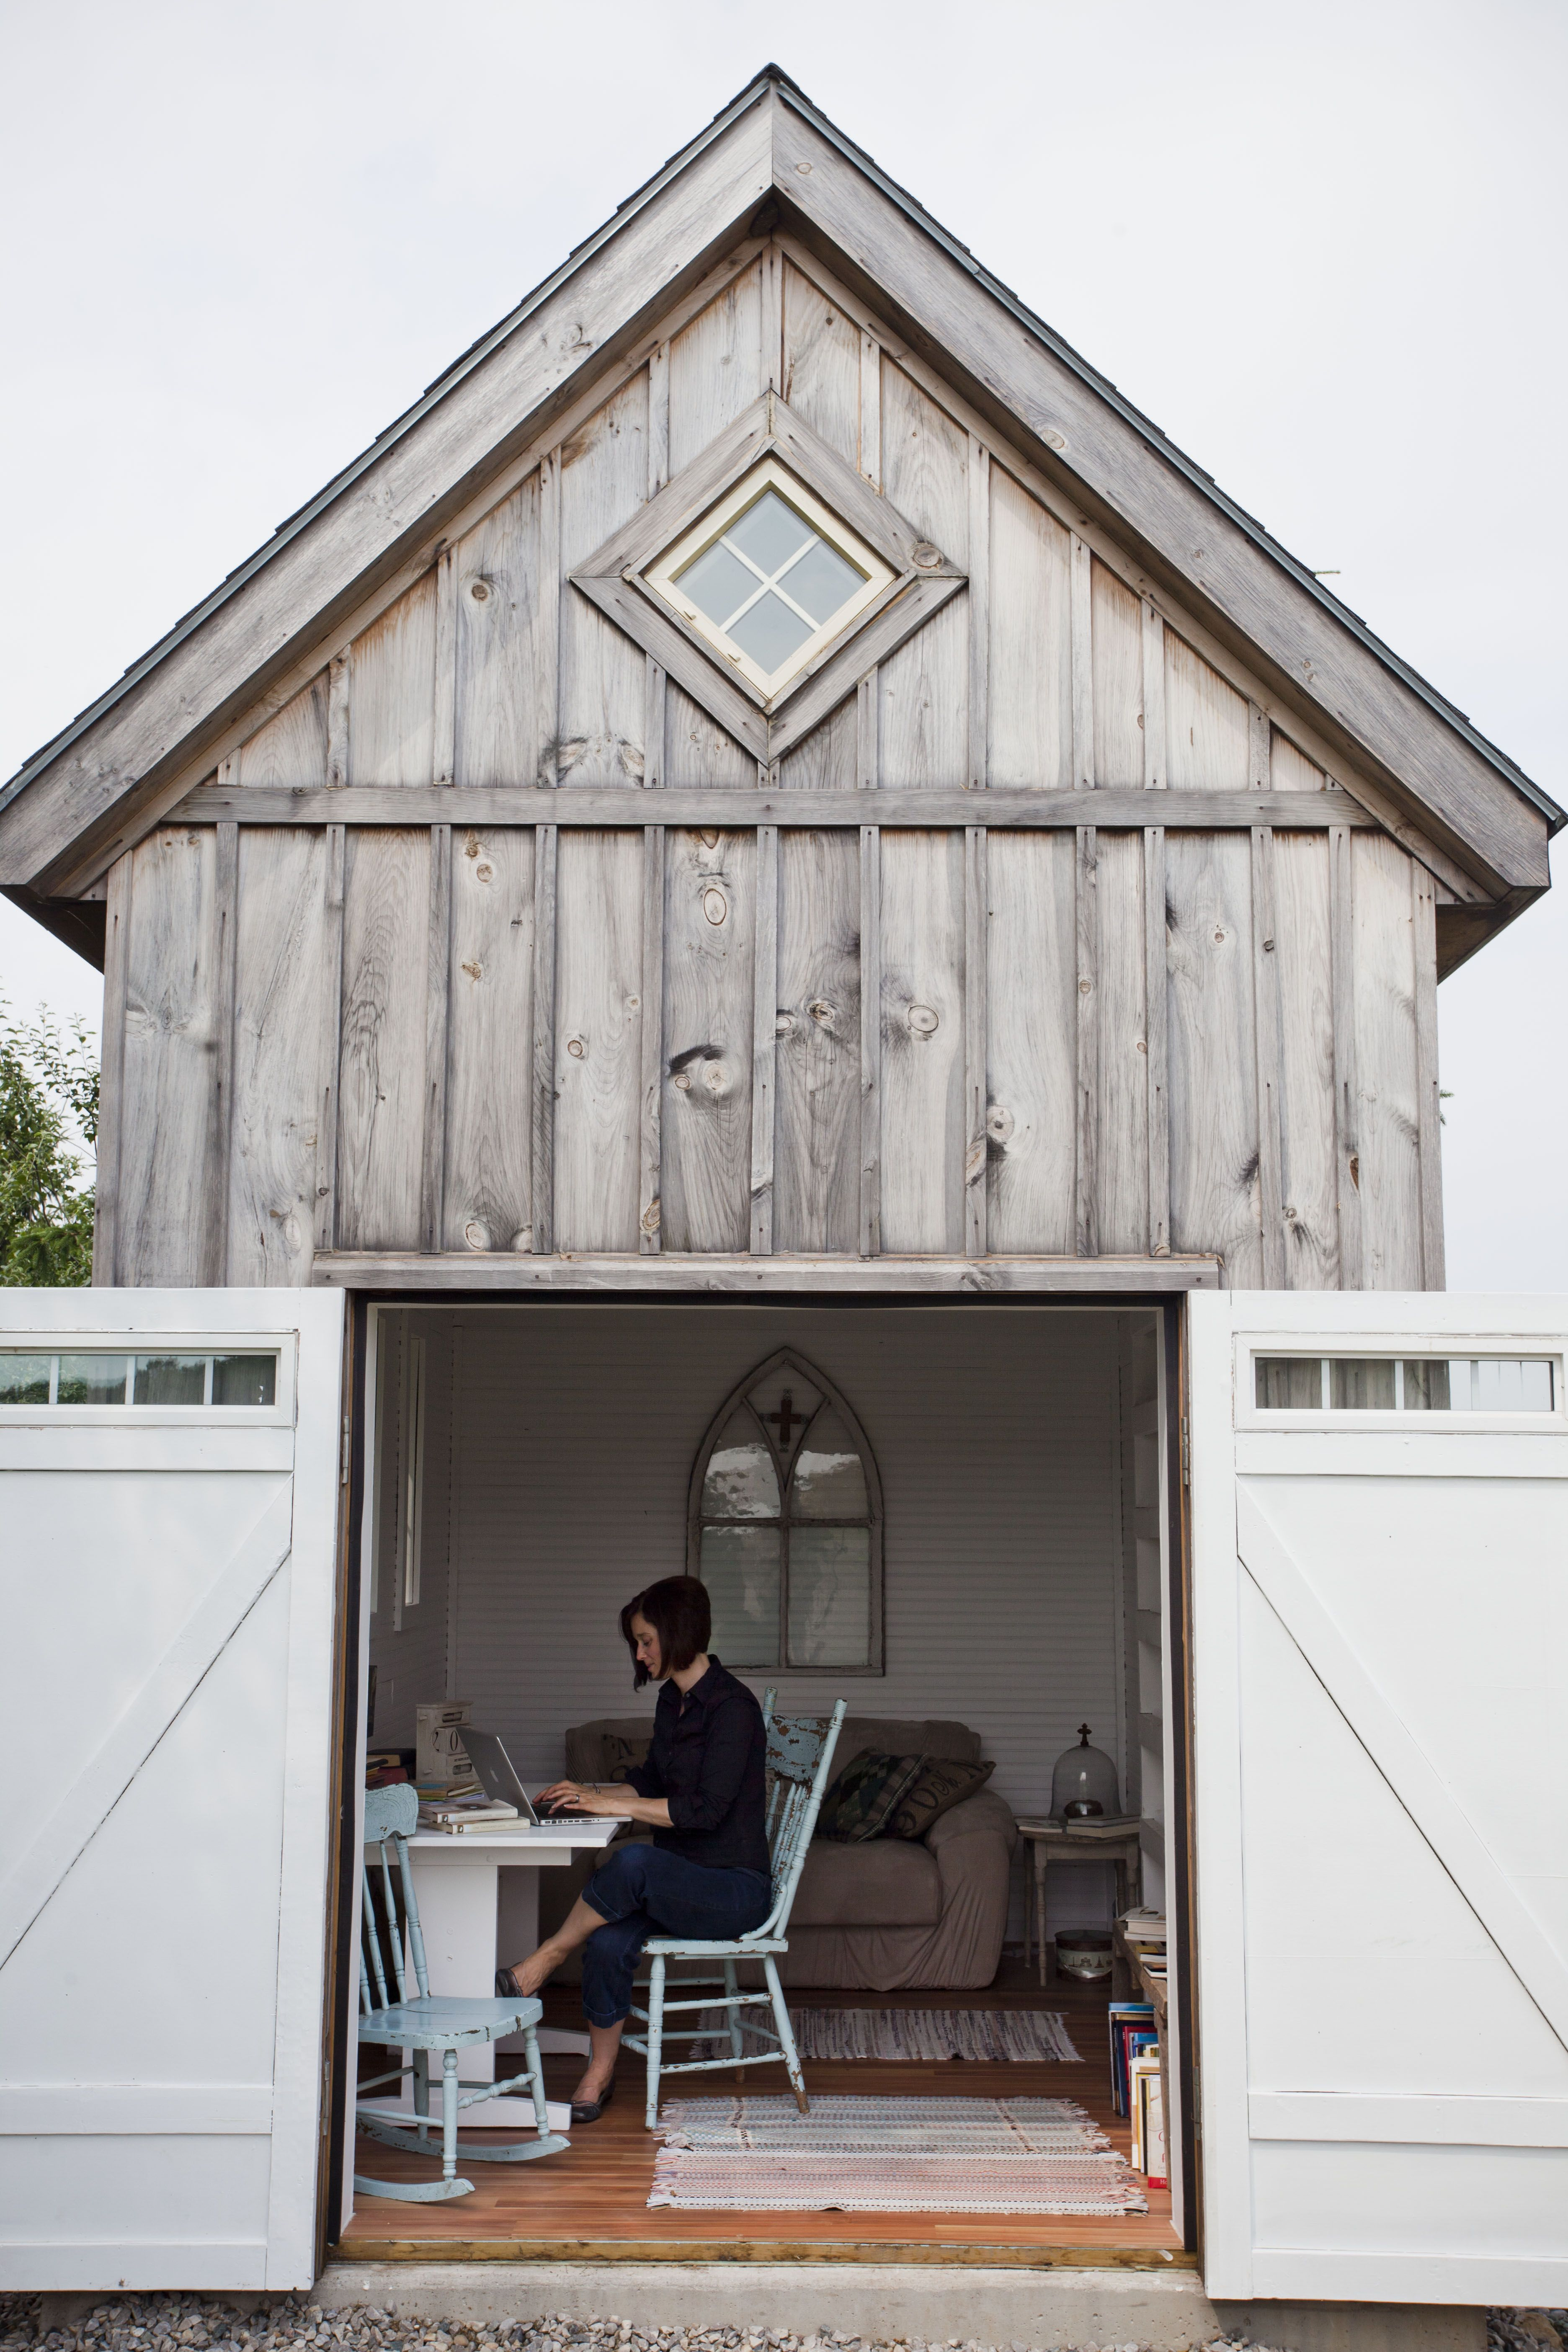 tiny backyard home office. A Small Barn Is Transformed Into An Amazing Outdoor Home Office Or Craft Room. Design Eight Co.,ltd WORKS -Interior Works Eigh. Tiny Backyard